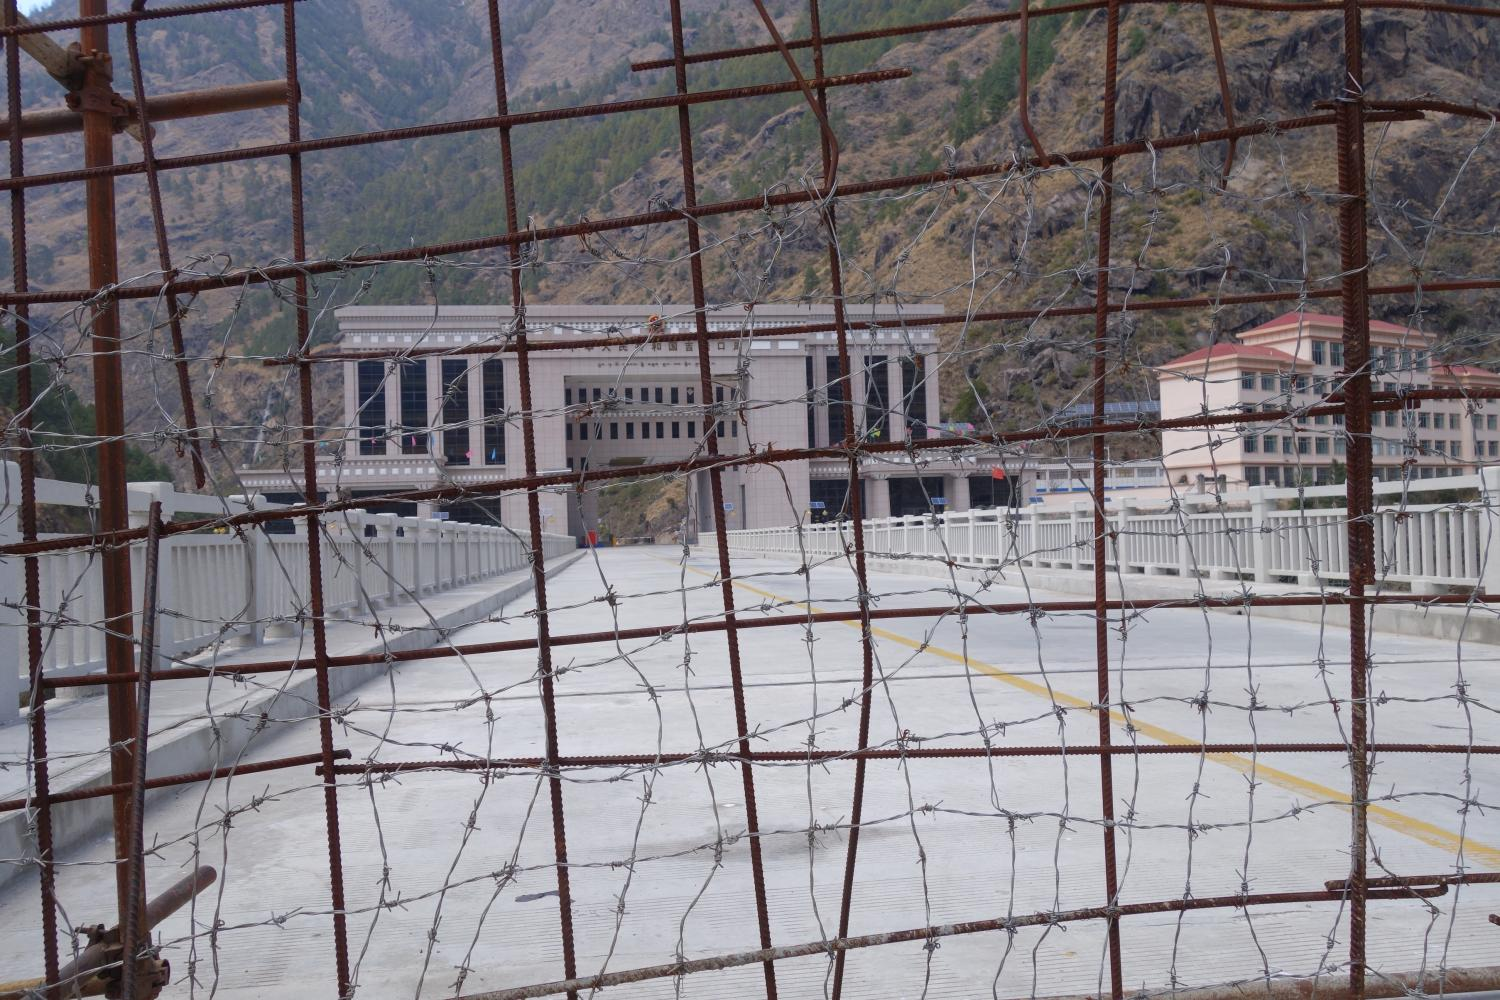 The rebar and barbed wire fence is opened numerous times per day for Nepali traders and Chinese laborers to shop at import-export markets on the Kyirong-side of the border